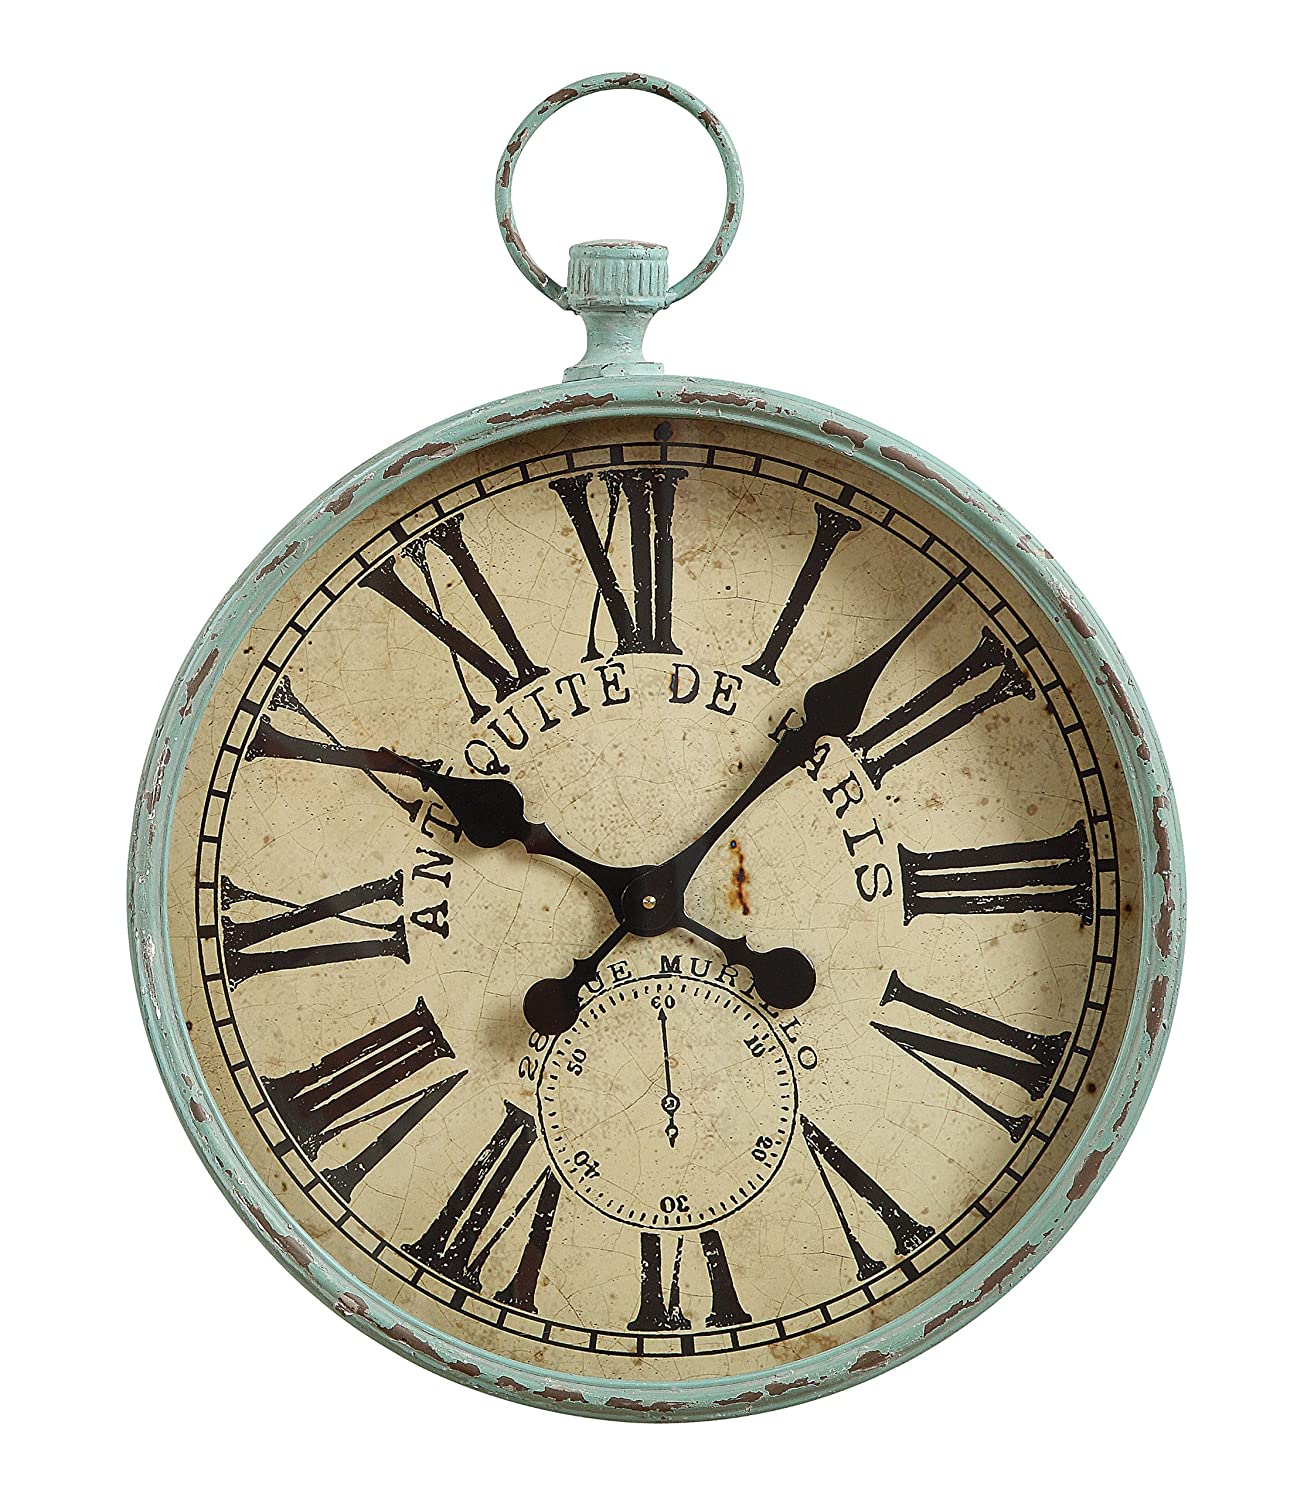 Antiqued metal Paris pocket watch wall clock for French country, French farmhouse and European country style interiors.